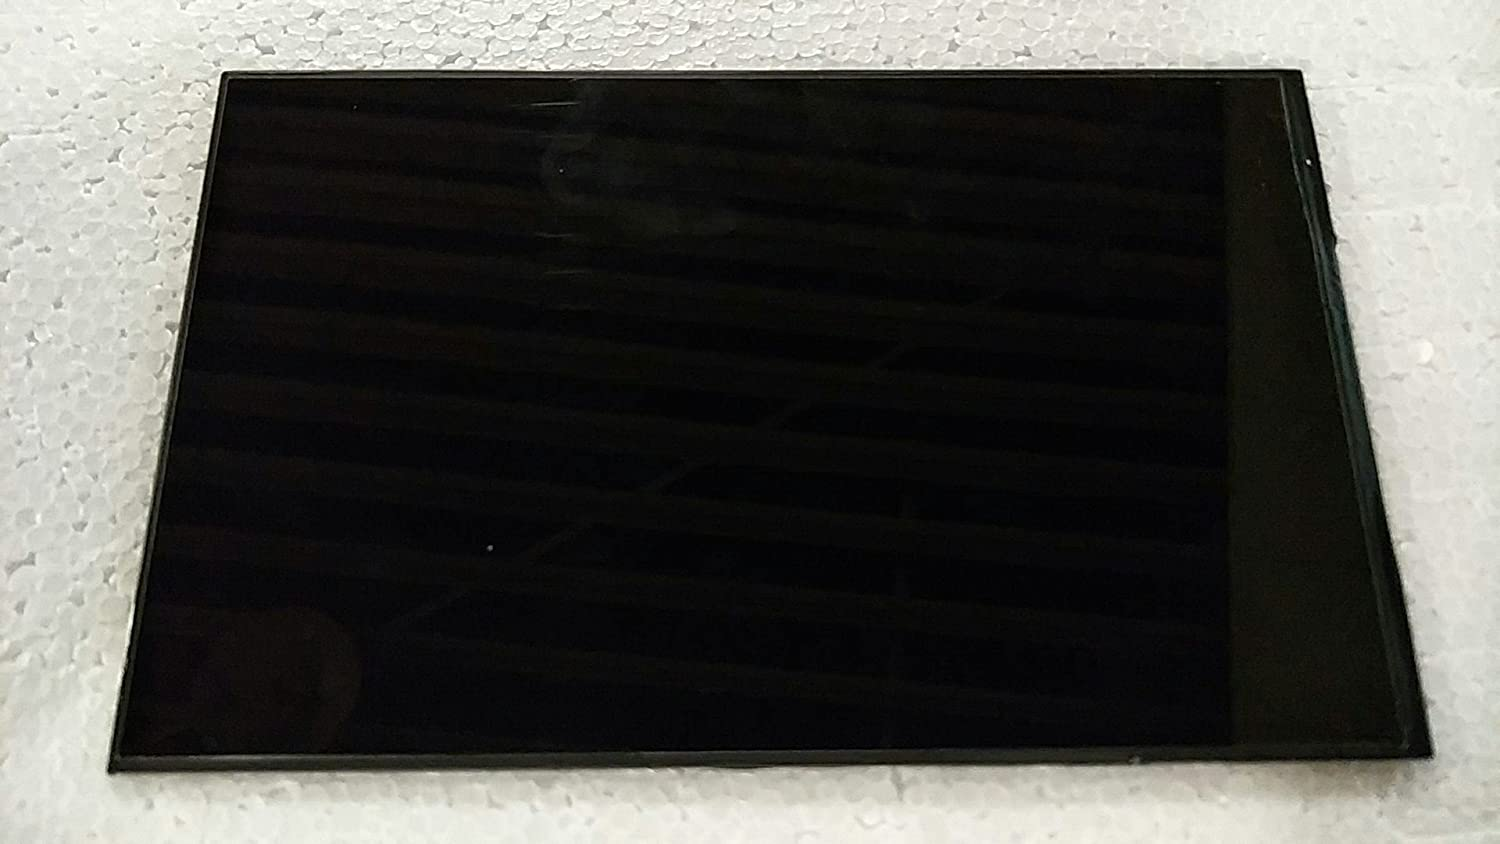 10Inch Tablet LCD Display Panel for Acer Iconia One 10 B3-A20 A5008